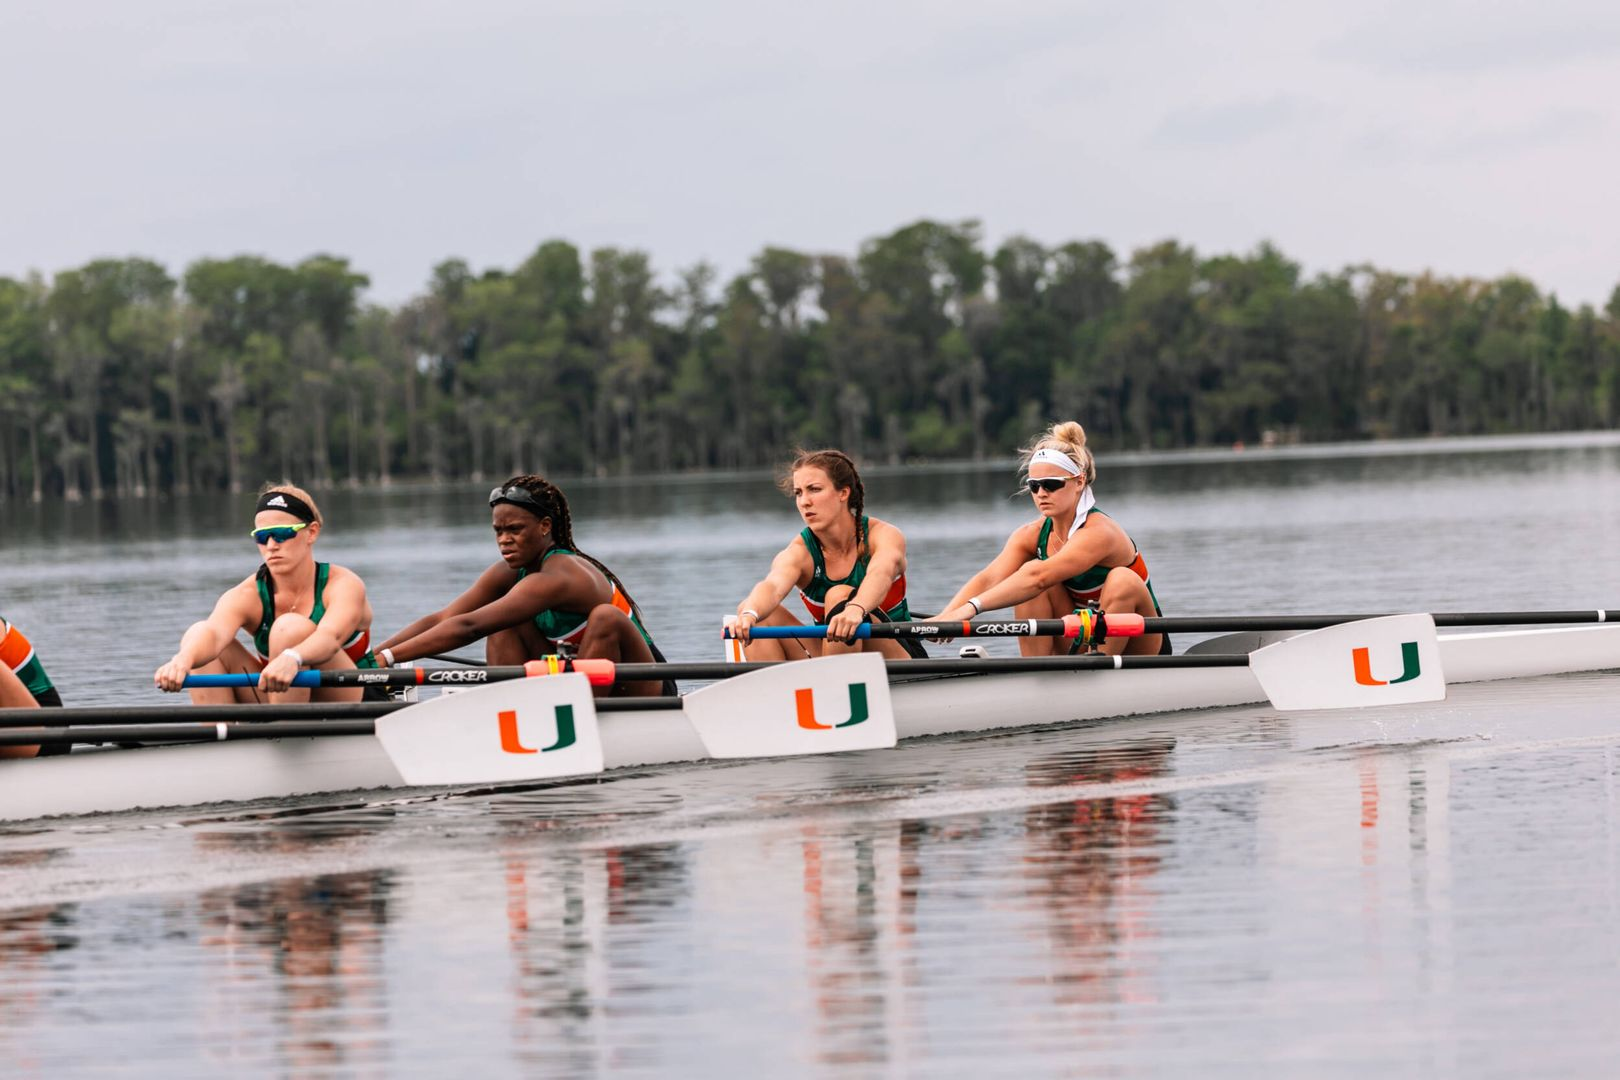 Canes Close Out Day 1 Of Lake Wheeler Invite